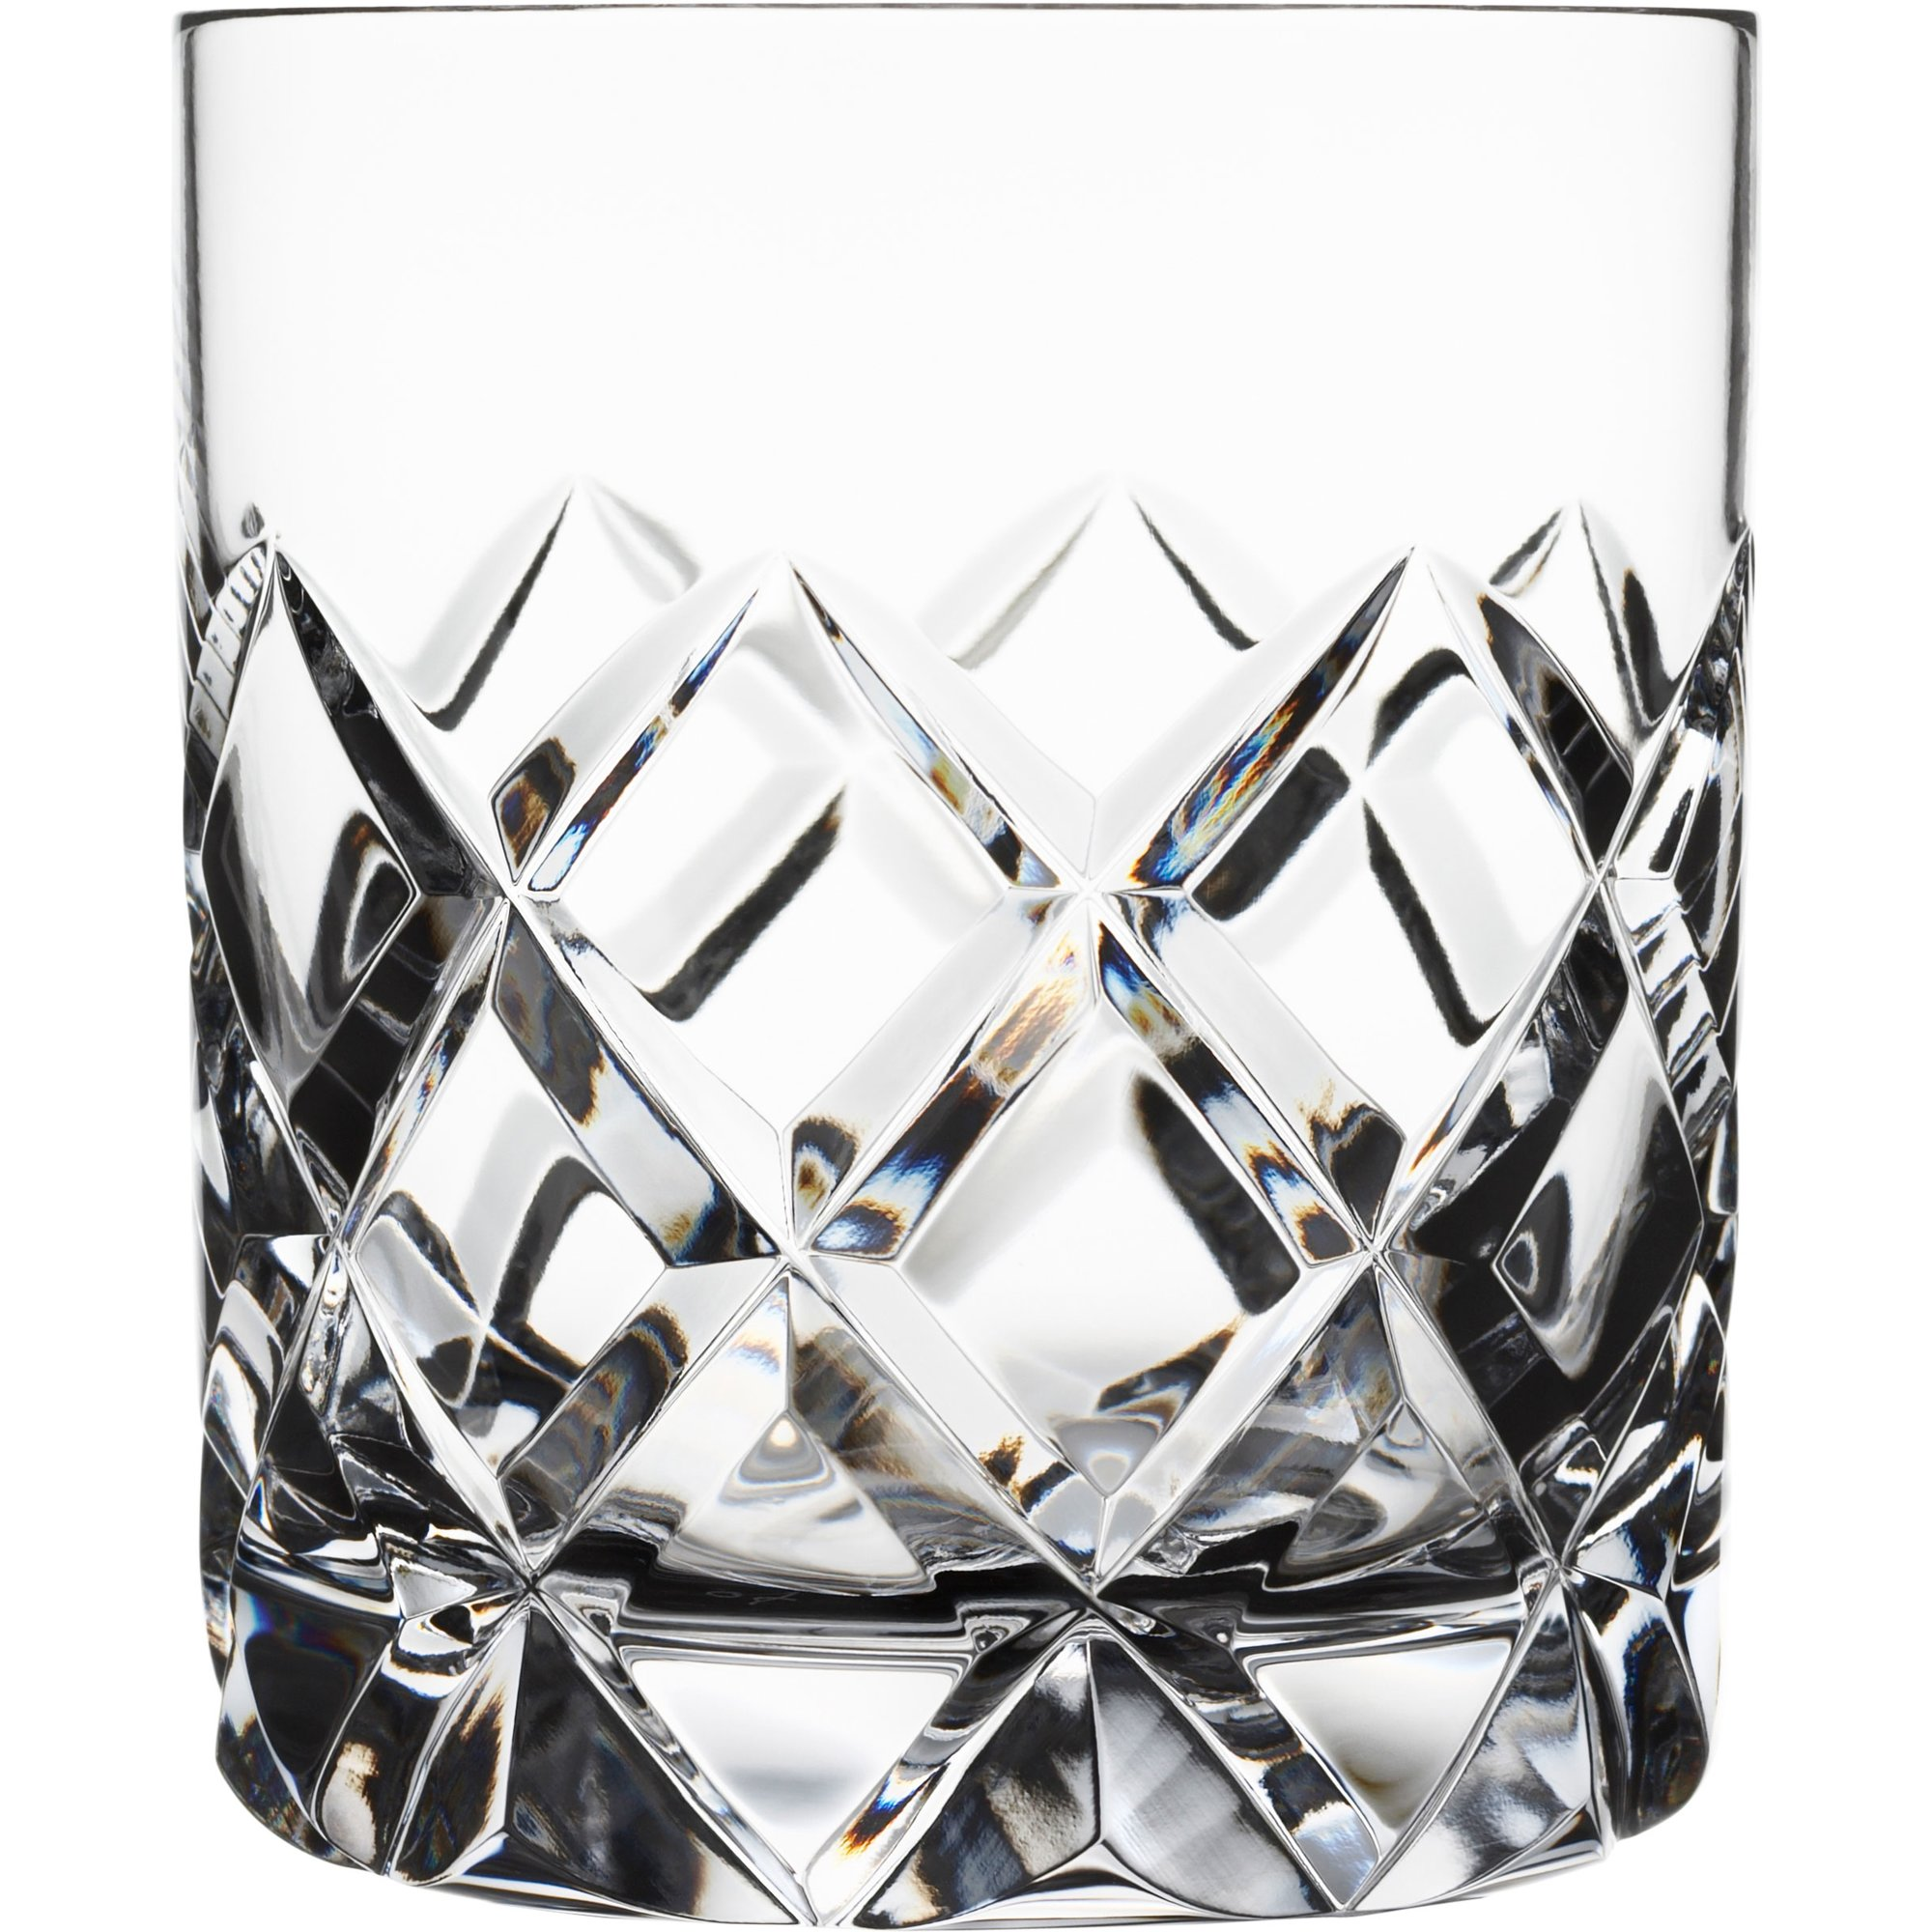 Orrefors Sofiero Old Fashioned Glas 25 cl